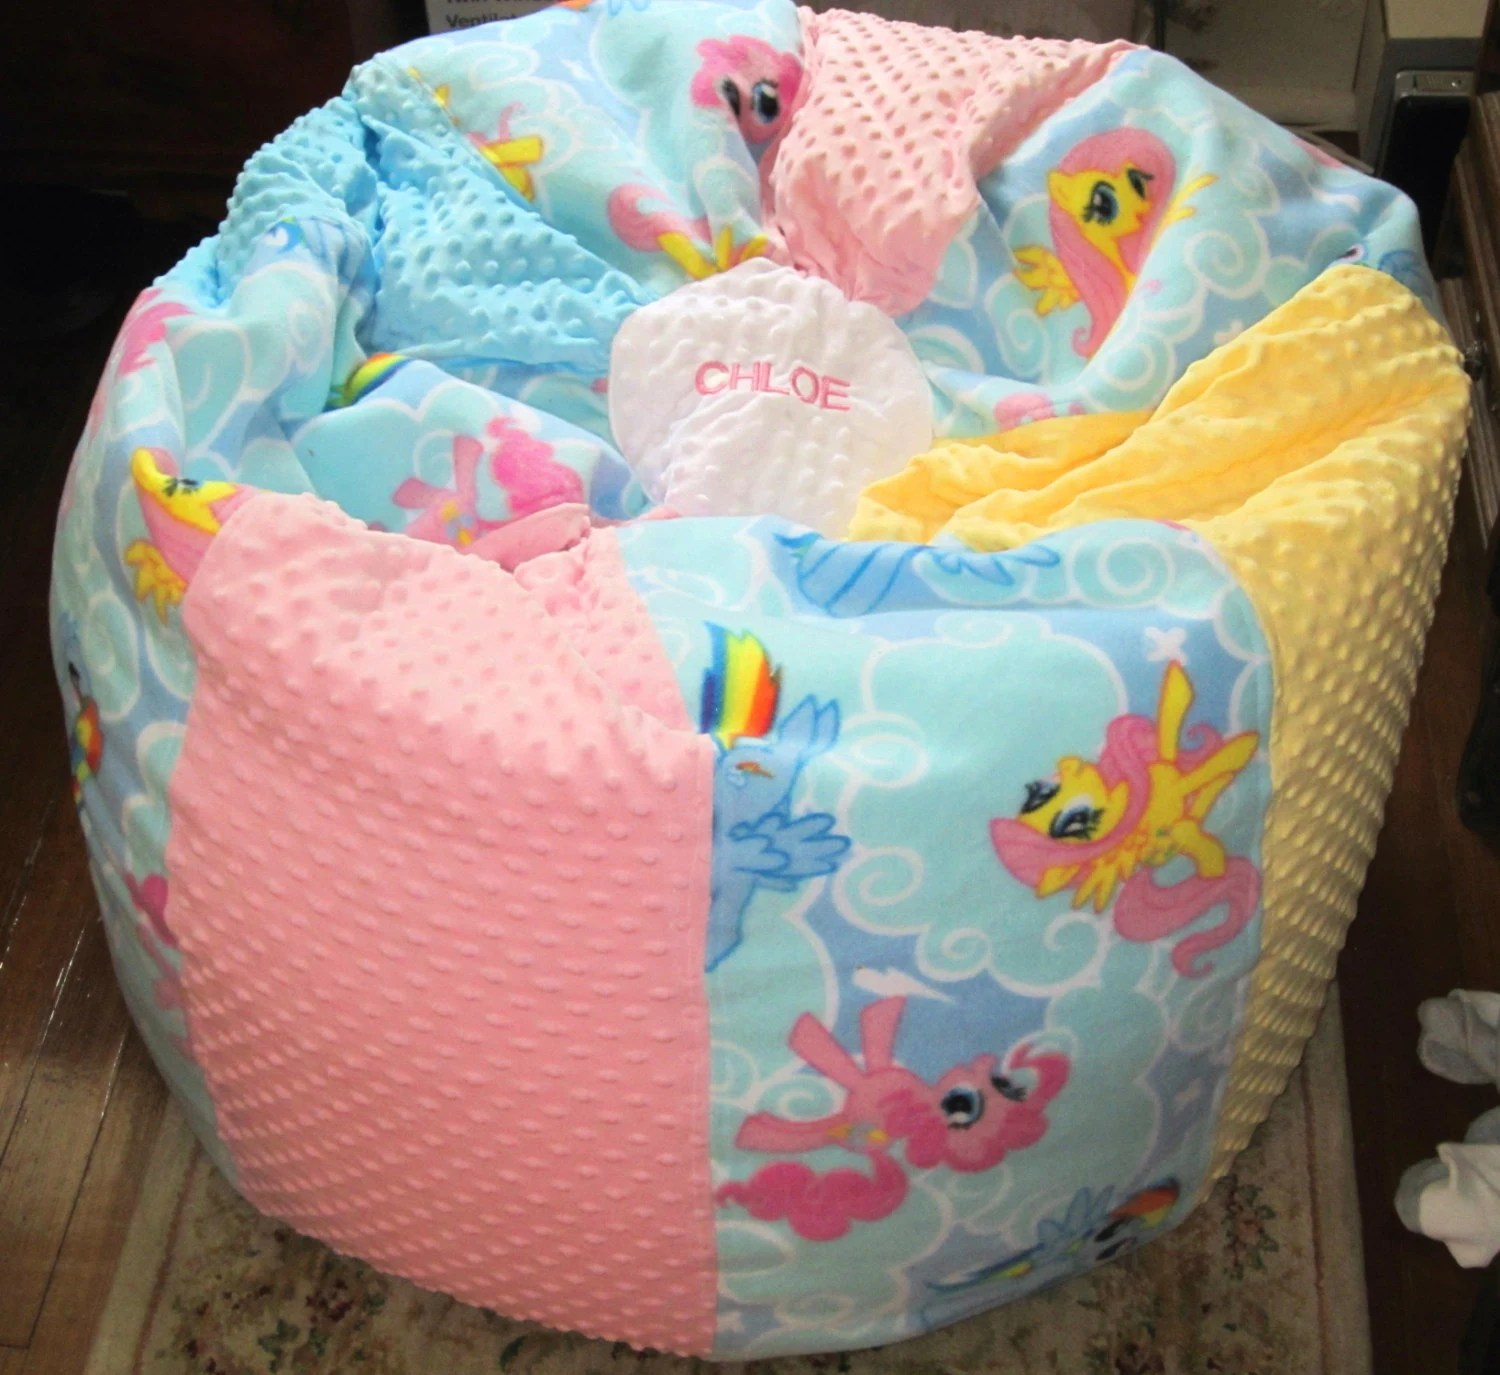 bean bag chair covers plycraft for sale tween my little pony cover only add a name etsy image 0